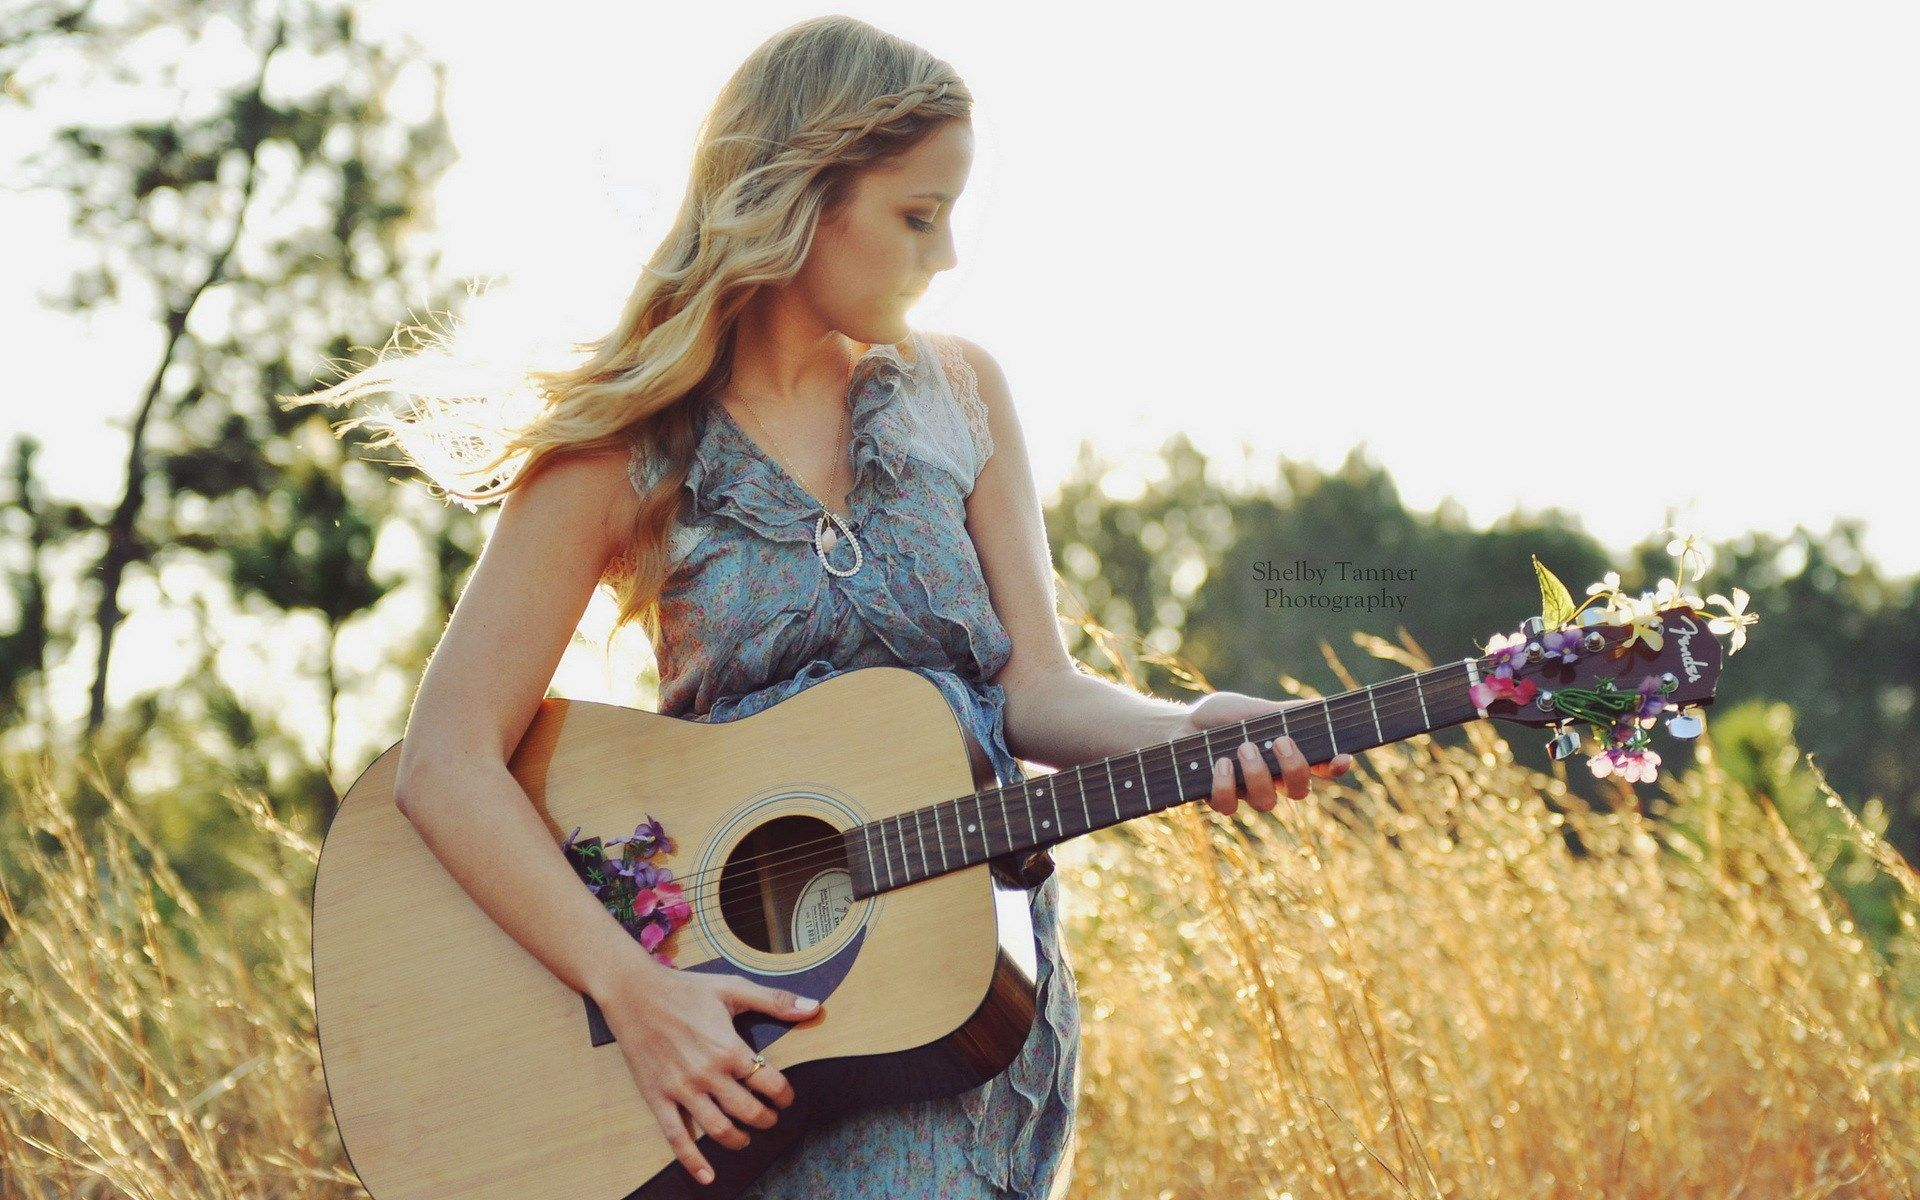 blonde girl guitar nature flowers summer dress hd wallpaper cool